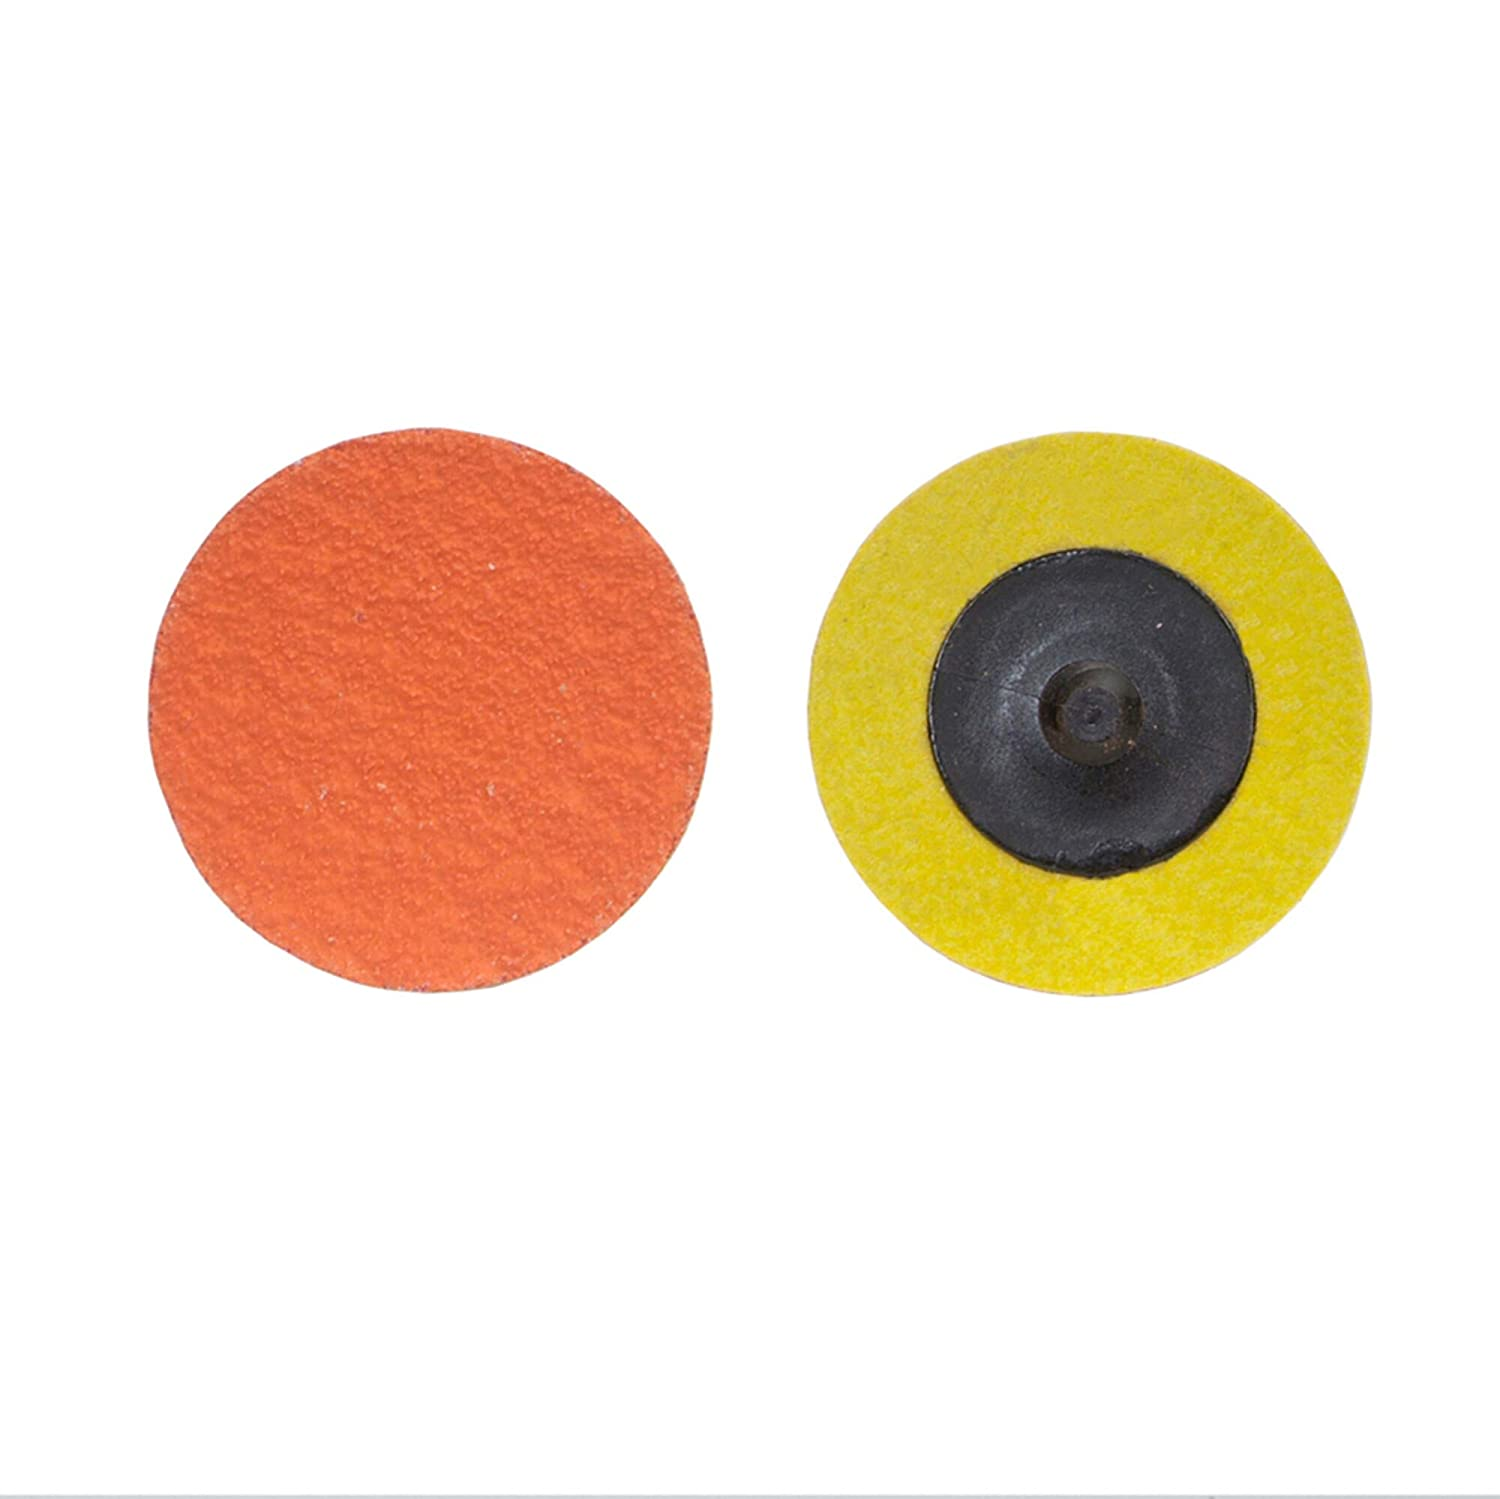 Norton R980P SG Blaze 3-Ply Speed-Lok Abrasive Disc, Polyester Backing, TR, Ceramic Aluminum Oxide, 2 Diameter, Grit 120 (Pack of 25) Size: 2 Model: 66261043386 Misc.